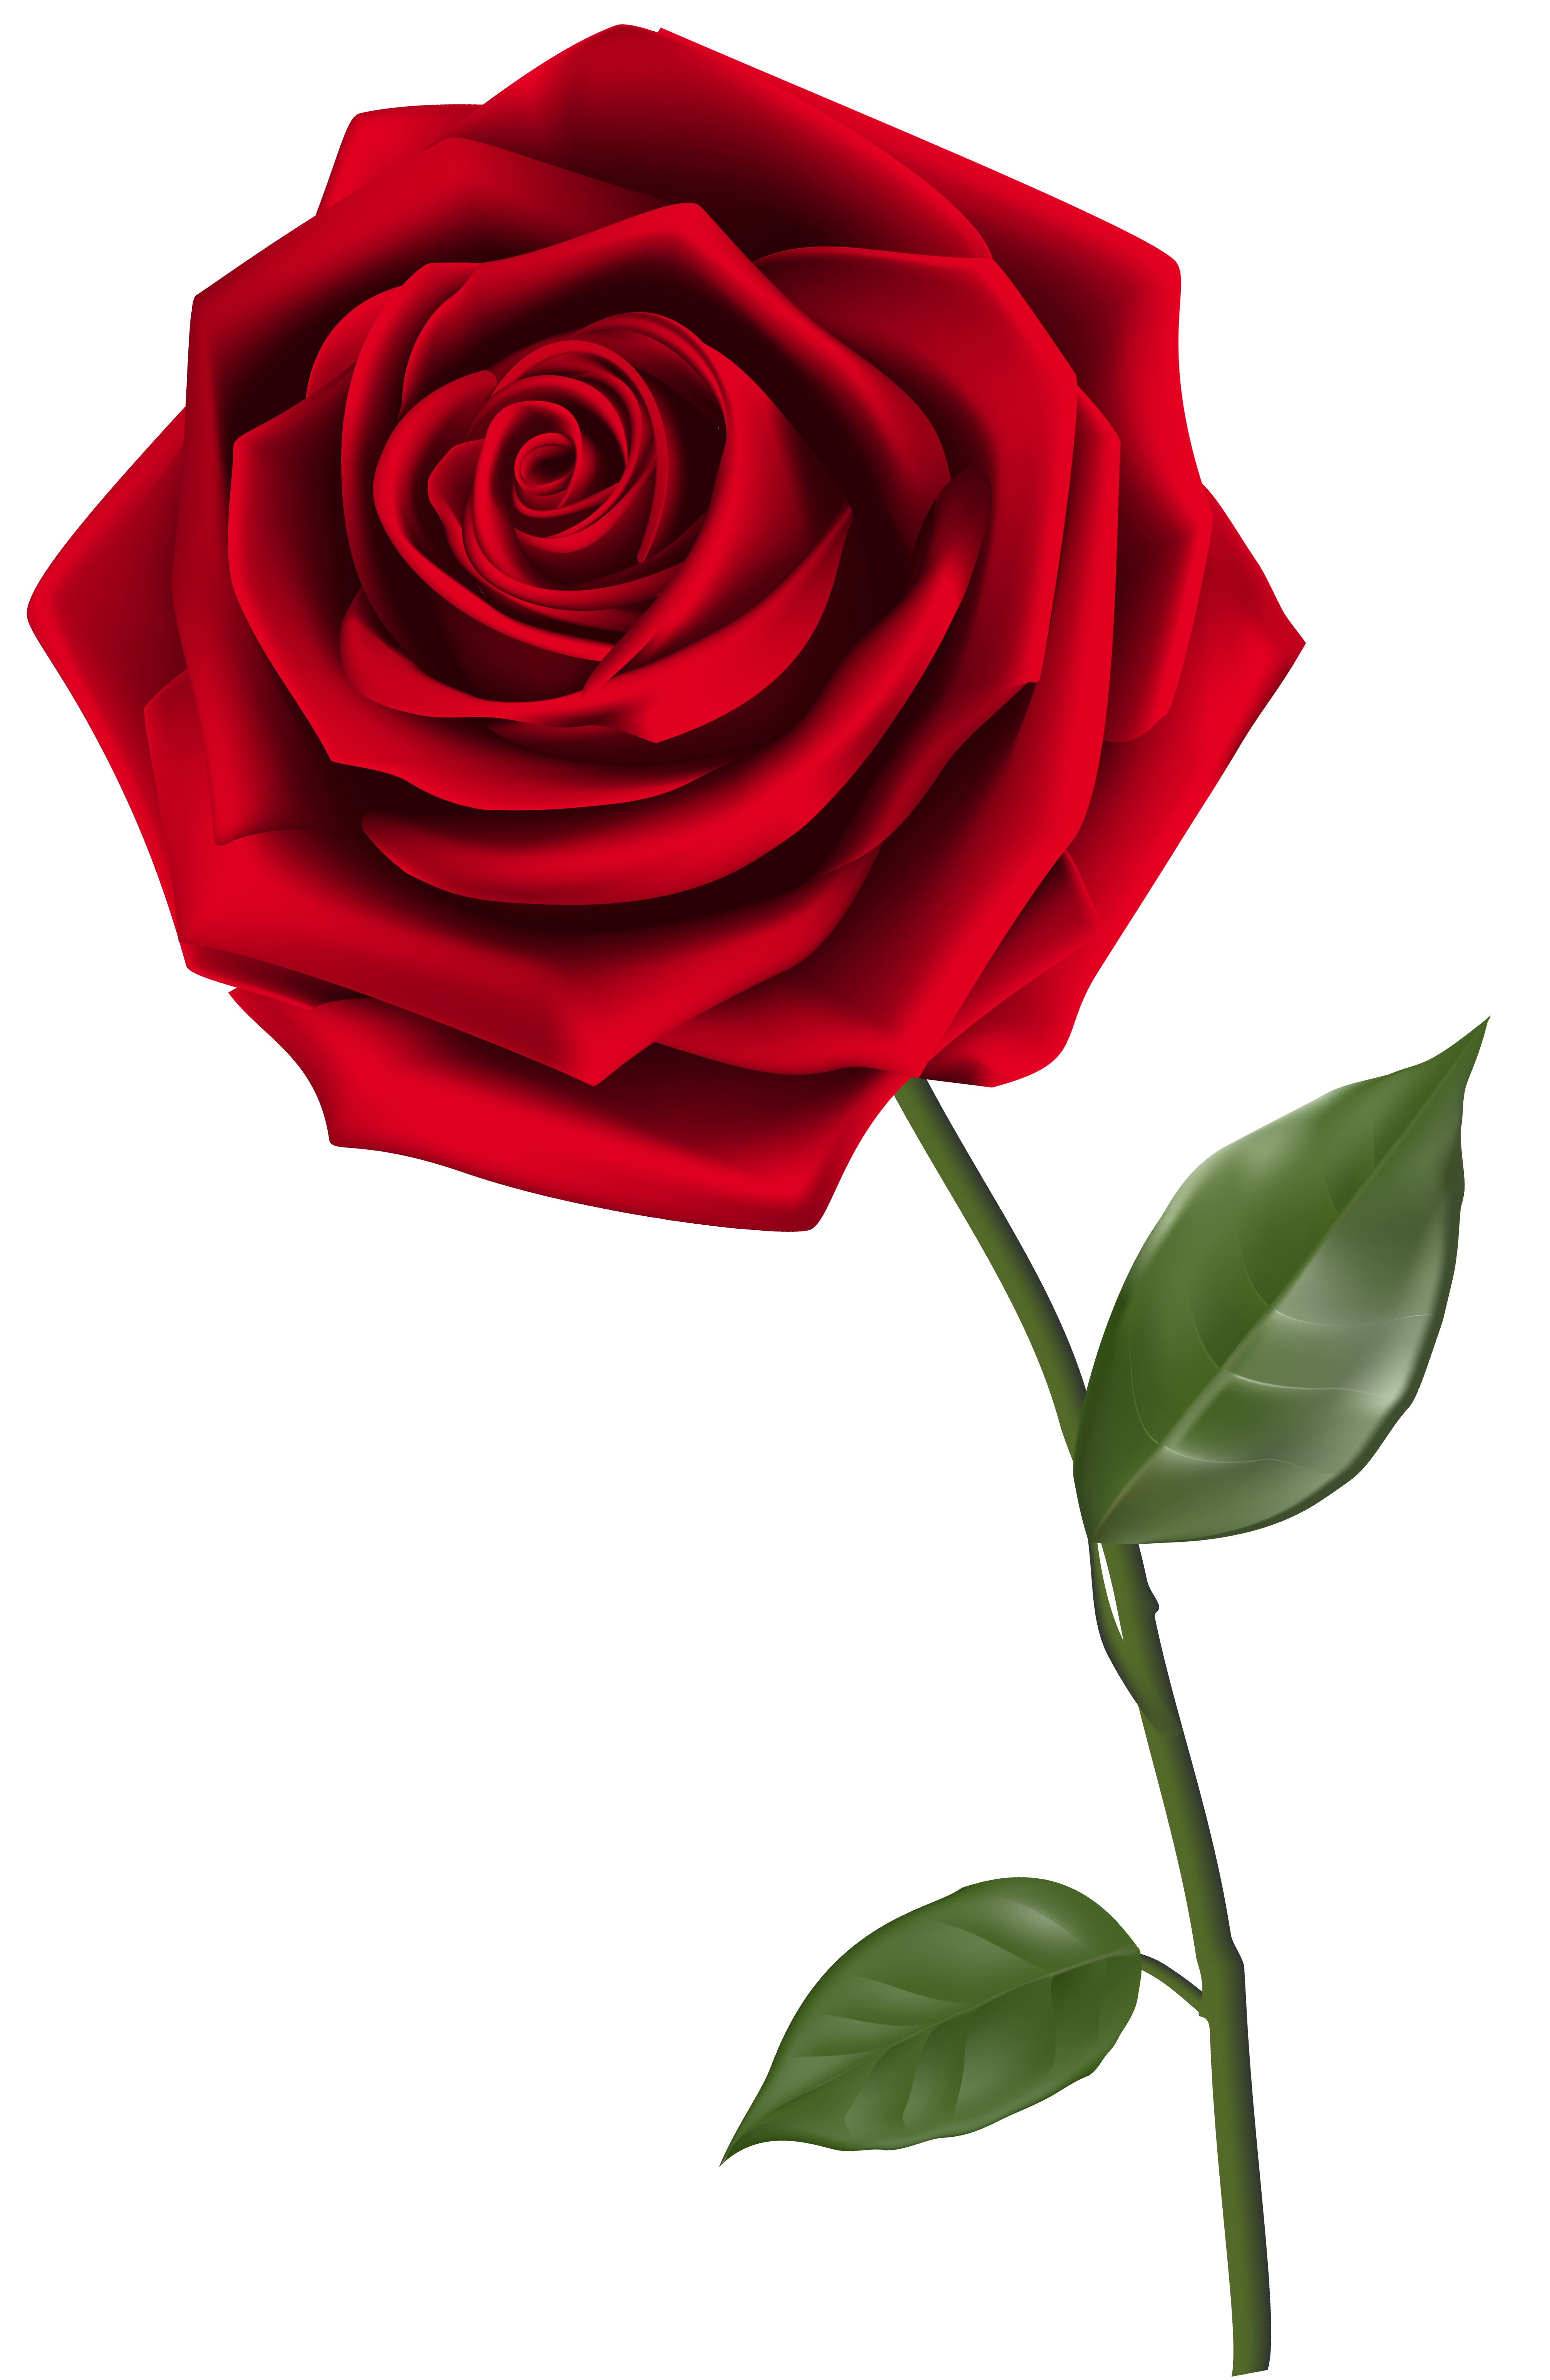 30 Trends Ideas Single Rose Flower Transparent Background In 2020 Red Rose Png Red Rose Flower Single Red Rose